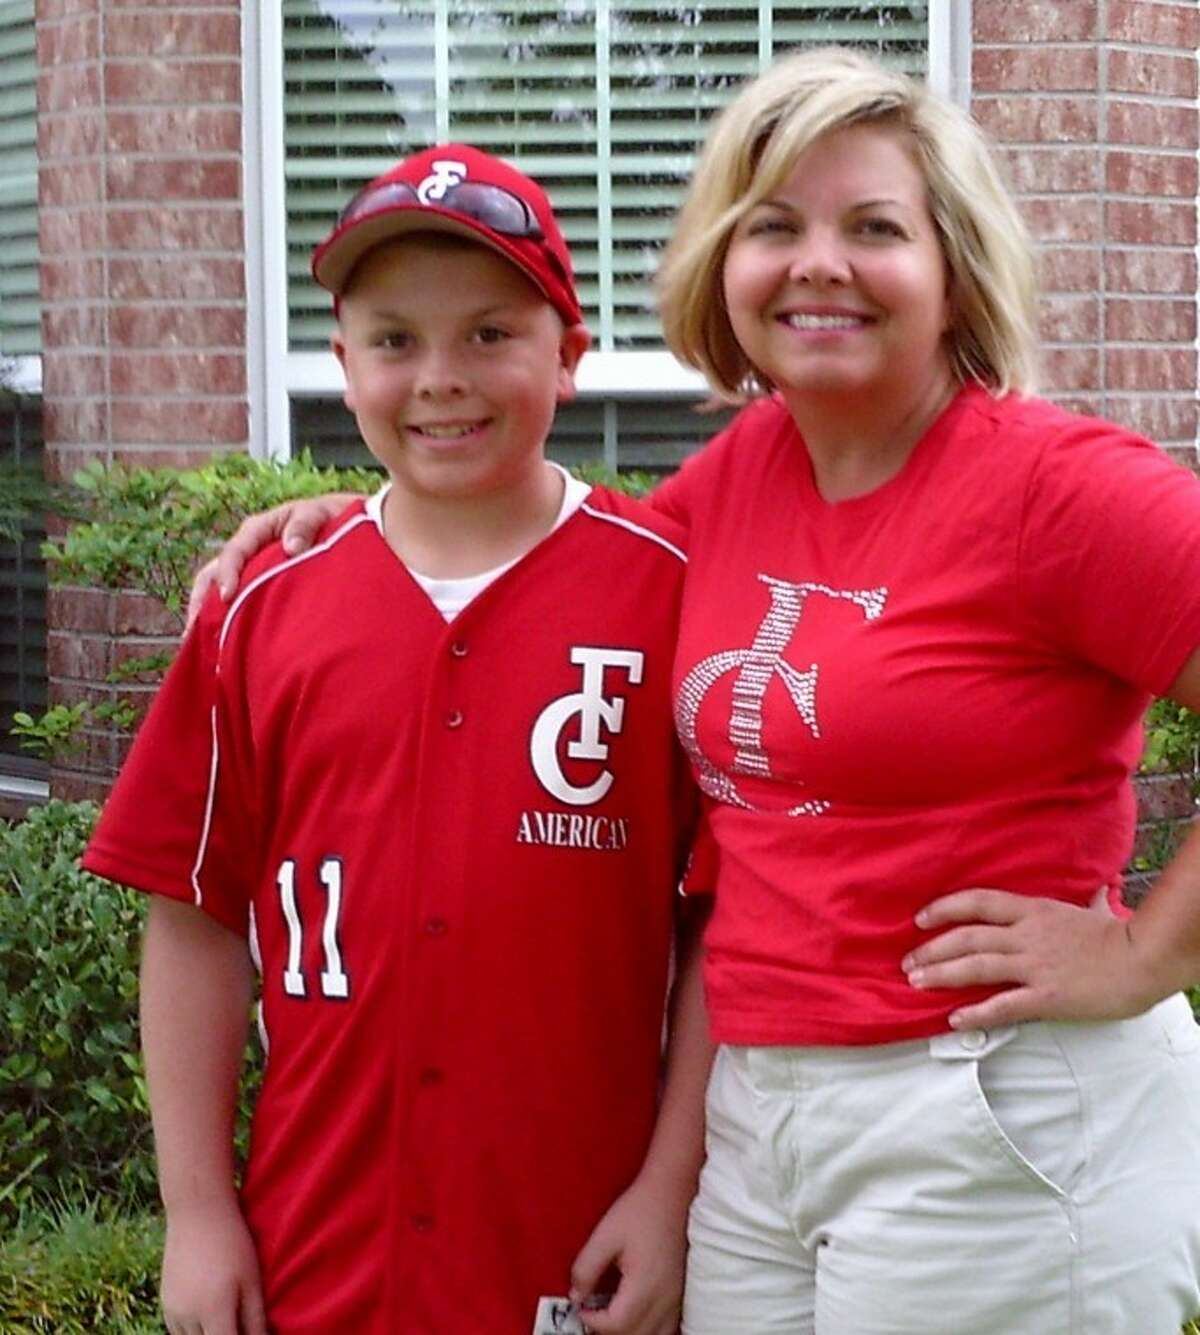 Nancy Hicks missed all but one of her son Payton'sLittle League games last year because she had cancer. Now cancer-free, Nancy has taken in every swing. She'll watch Payton play in the sectional tournament this week.